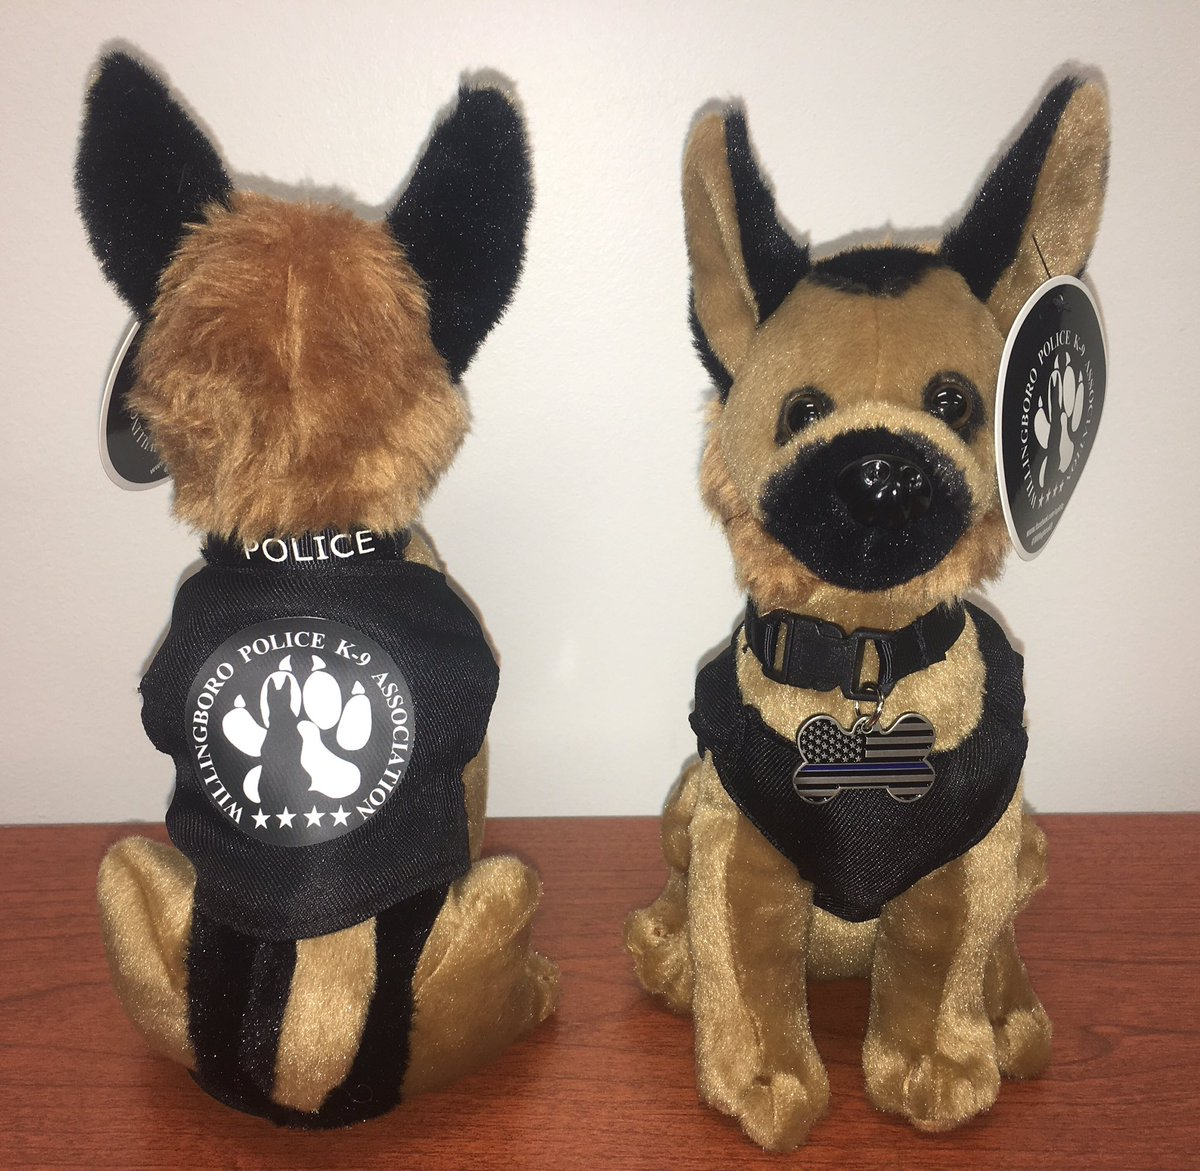 Willingboro K 9 On Twitter Plush Police Dogs On Sale Now 15 Each